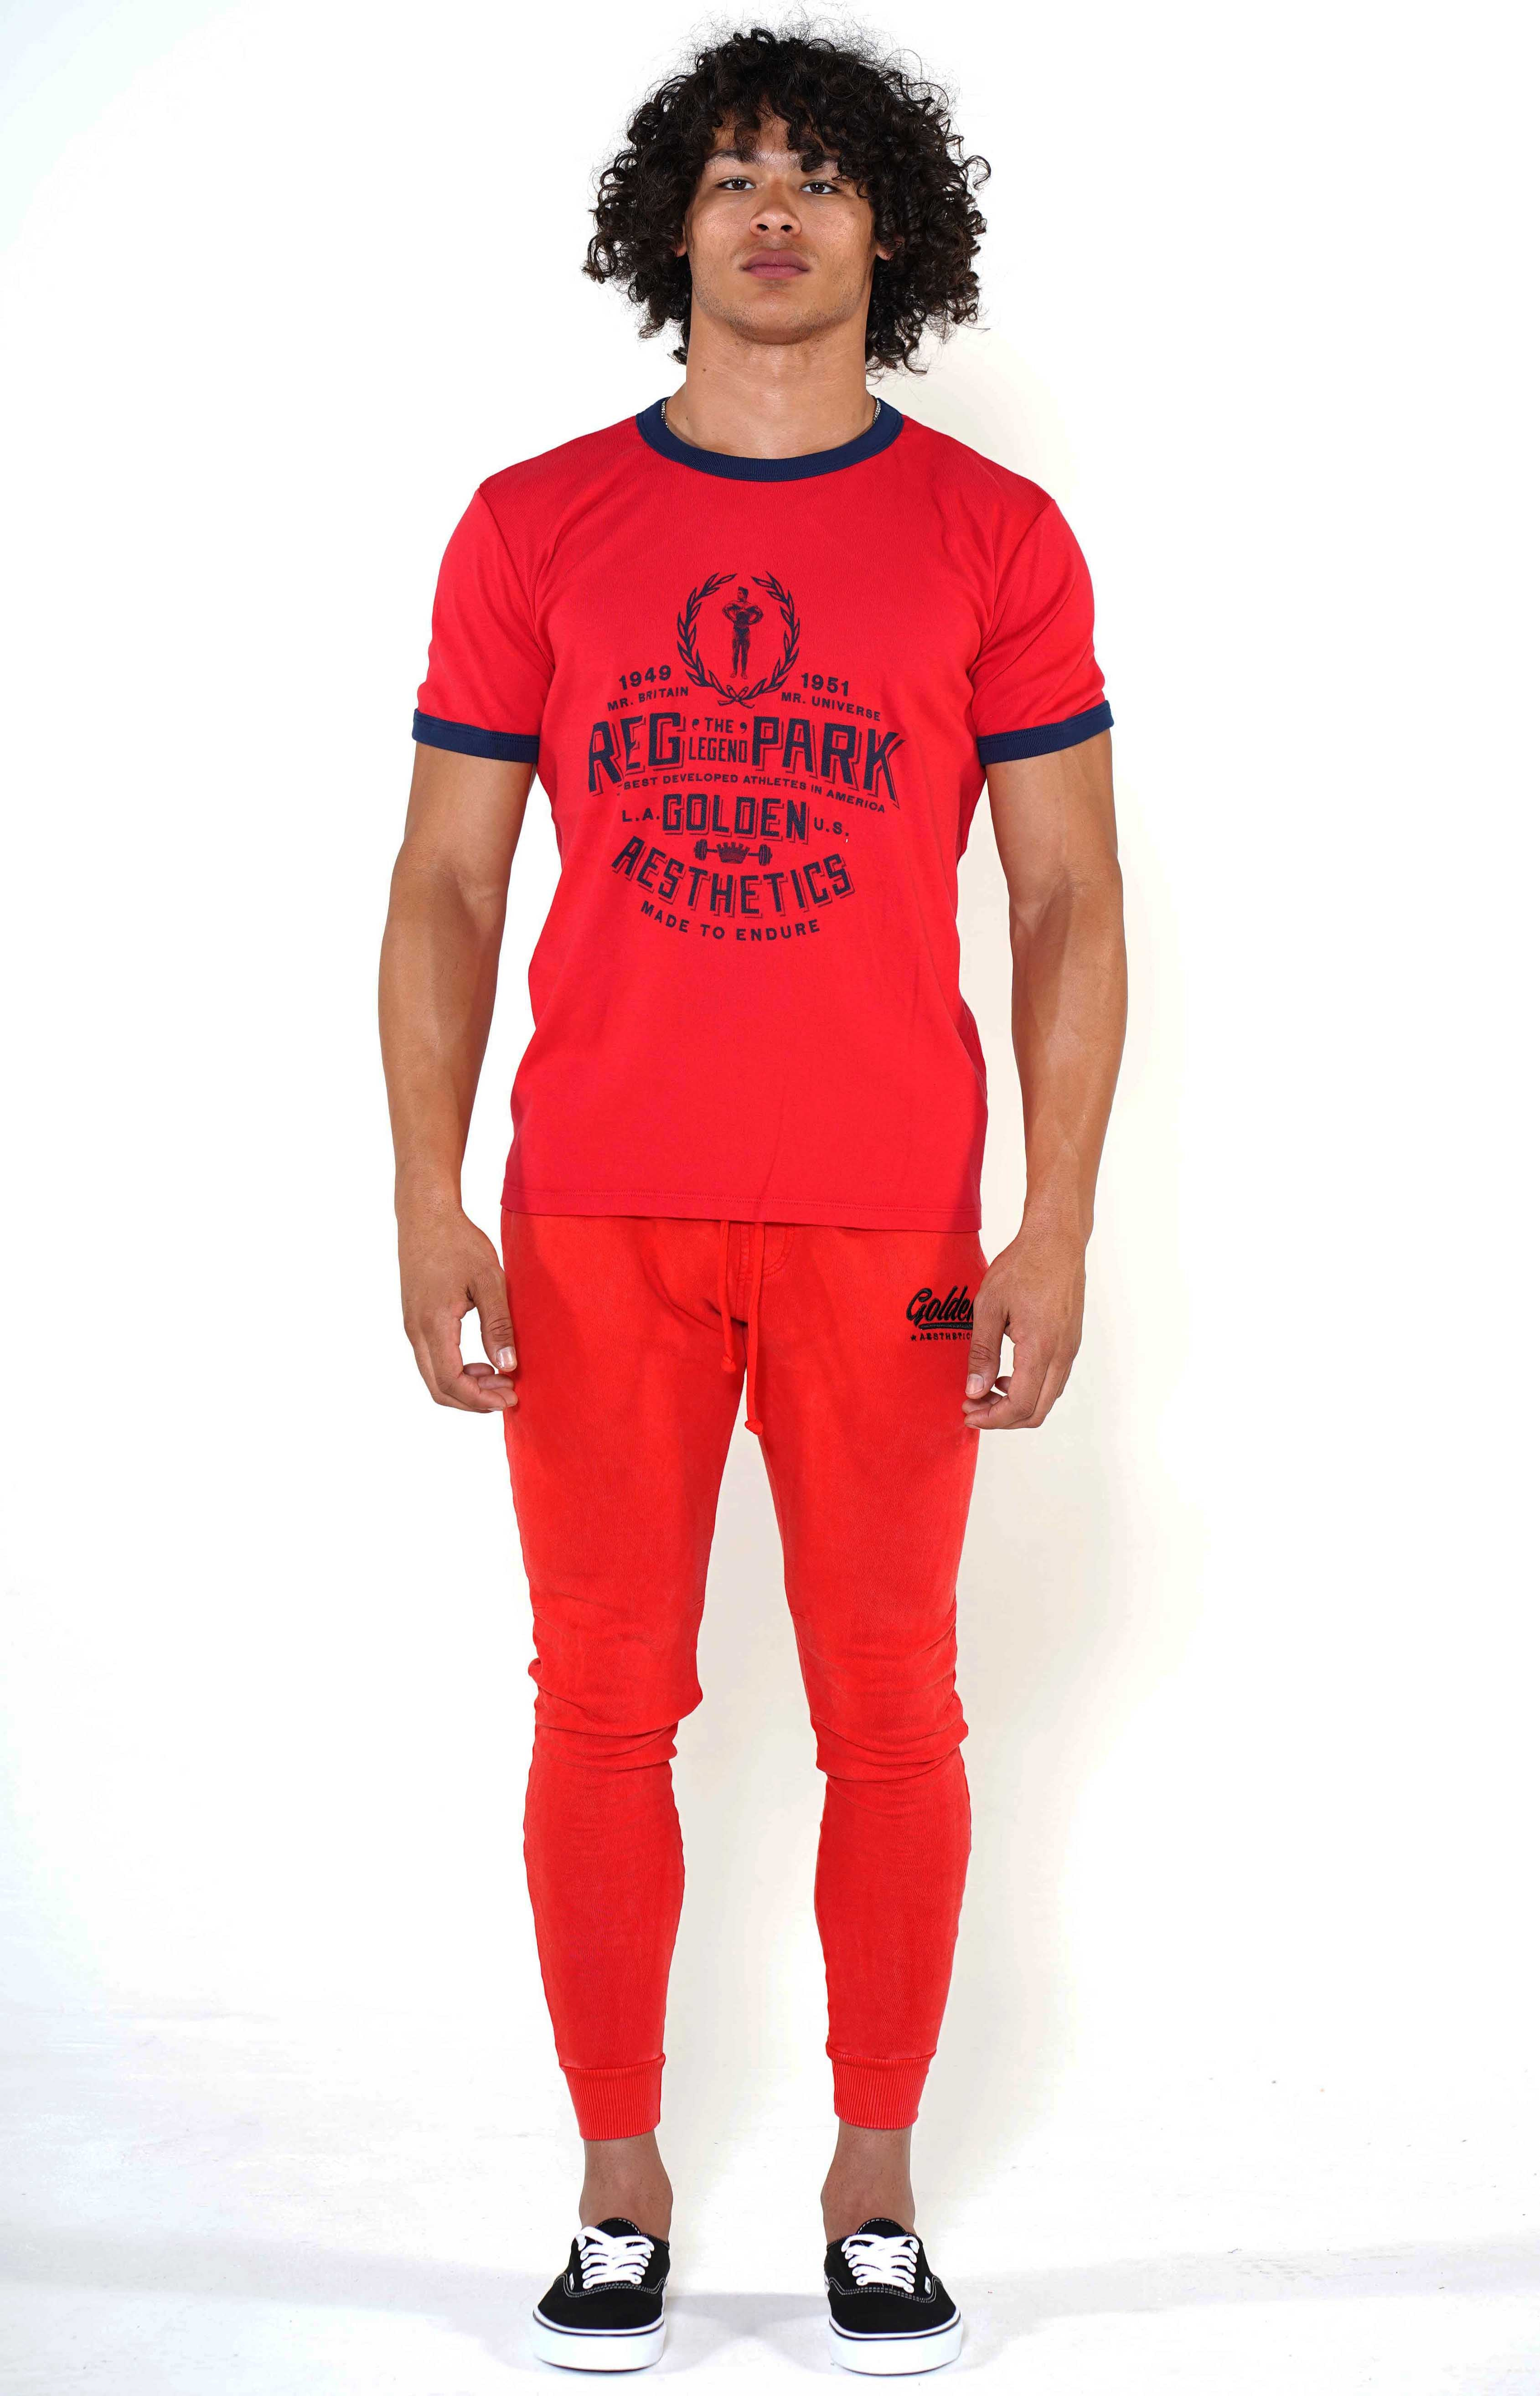 Men's Red/Black Classic Joggers - Golden Aesthetics